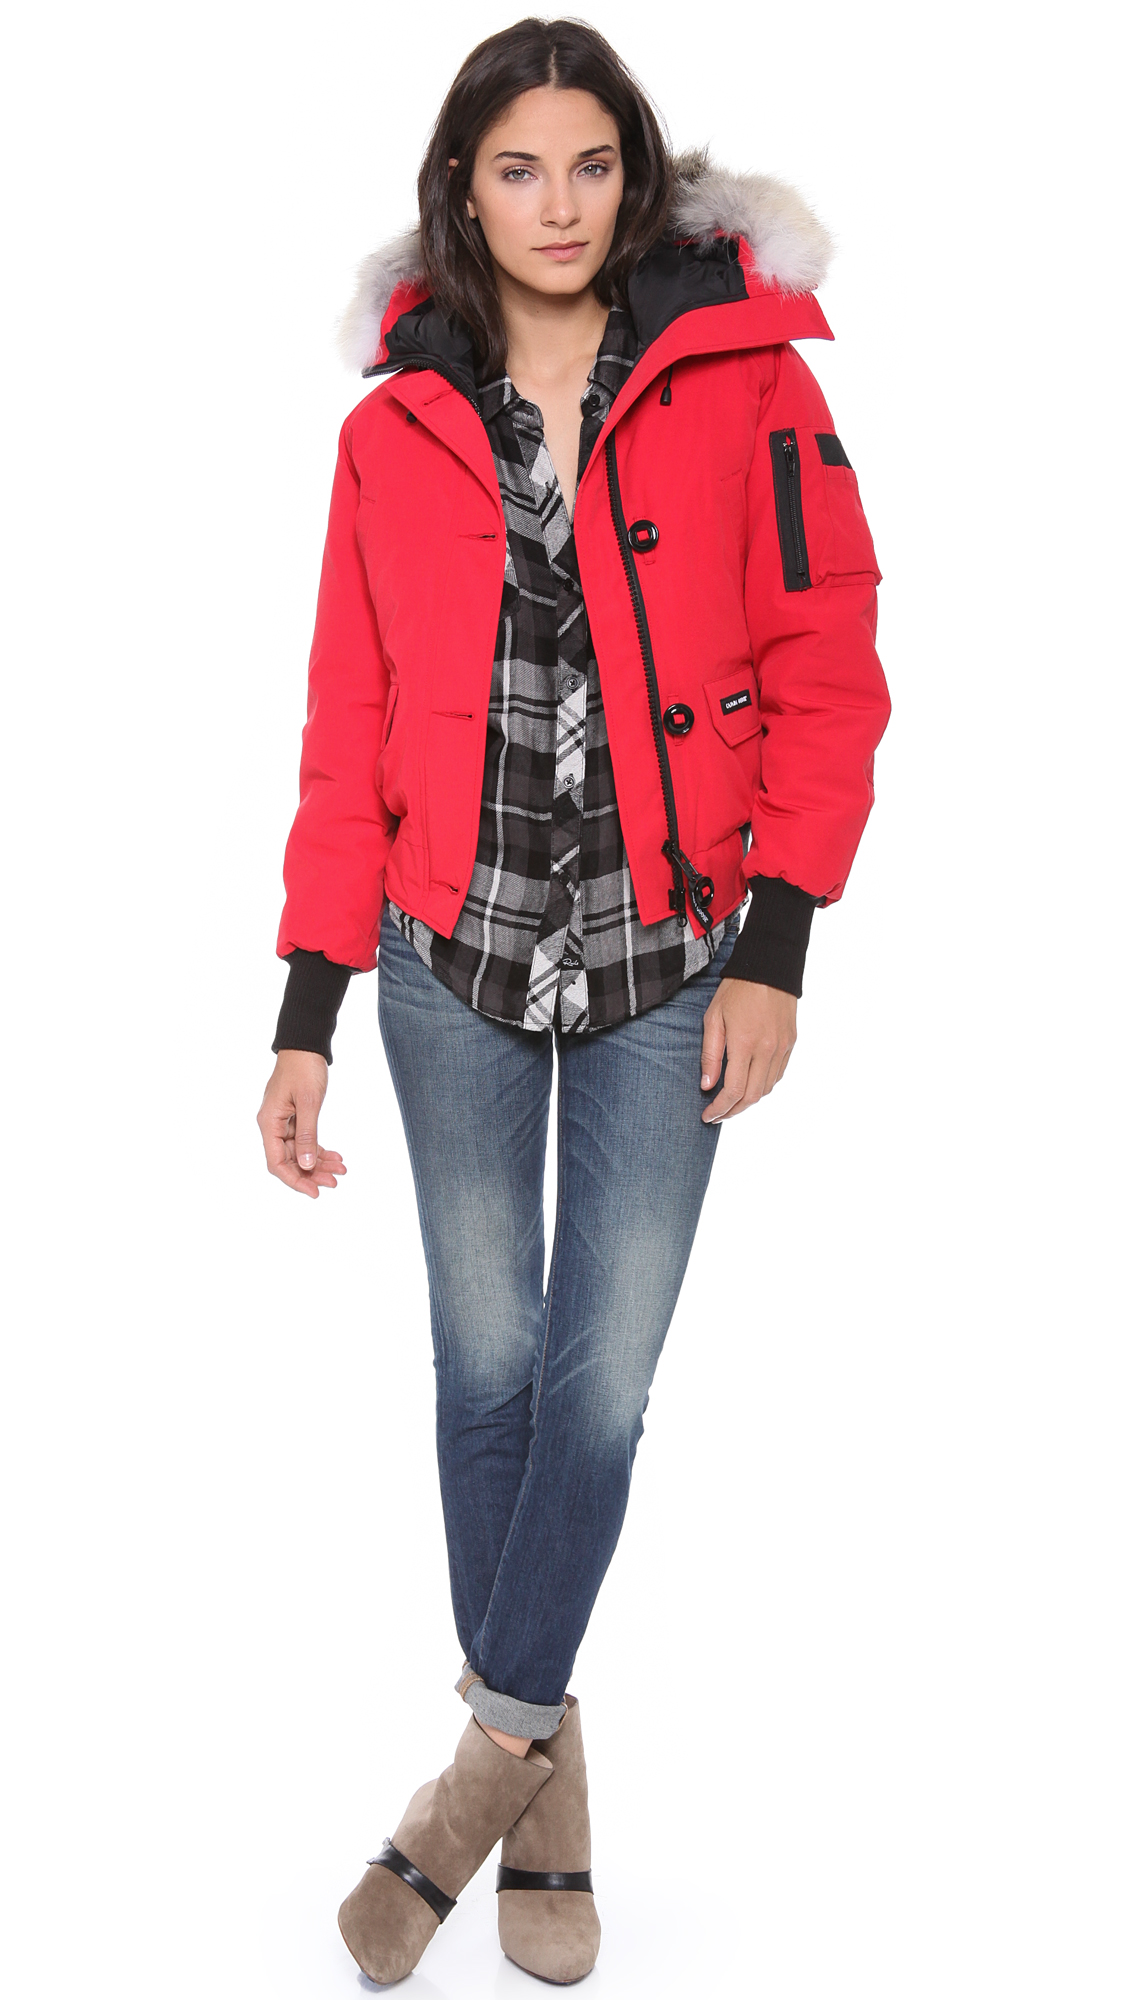 cf0c6c7e65e8 Gallery. Previously sold at  Shopbop · Women s Canada Goose Chilliwack  Women s Red ...